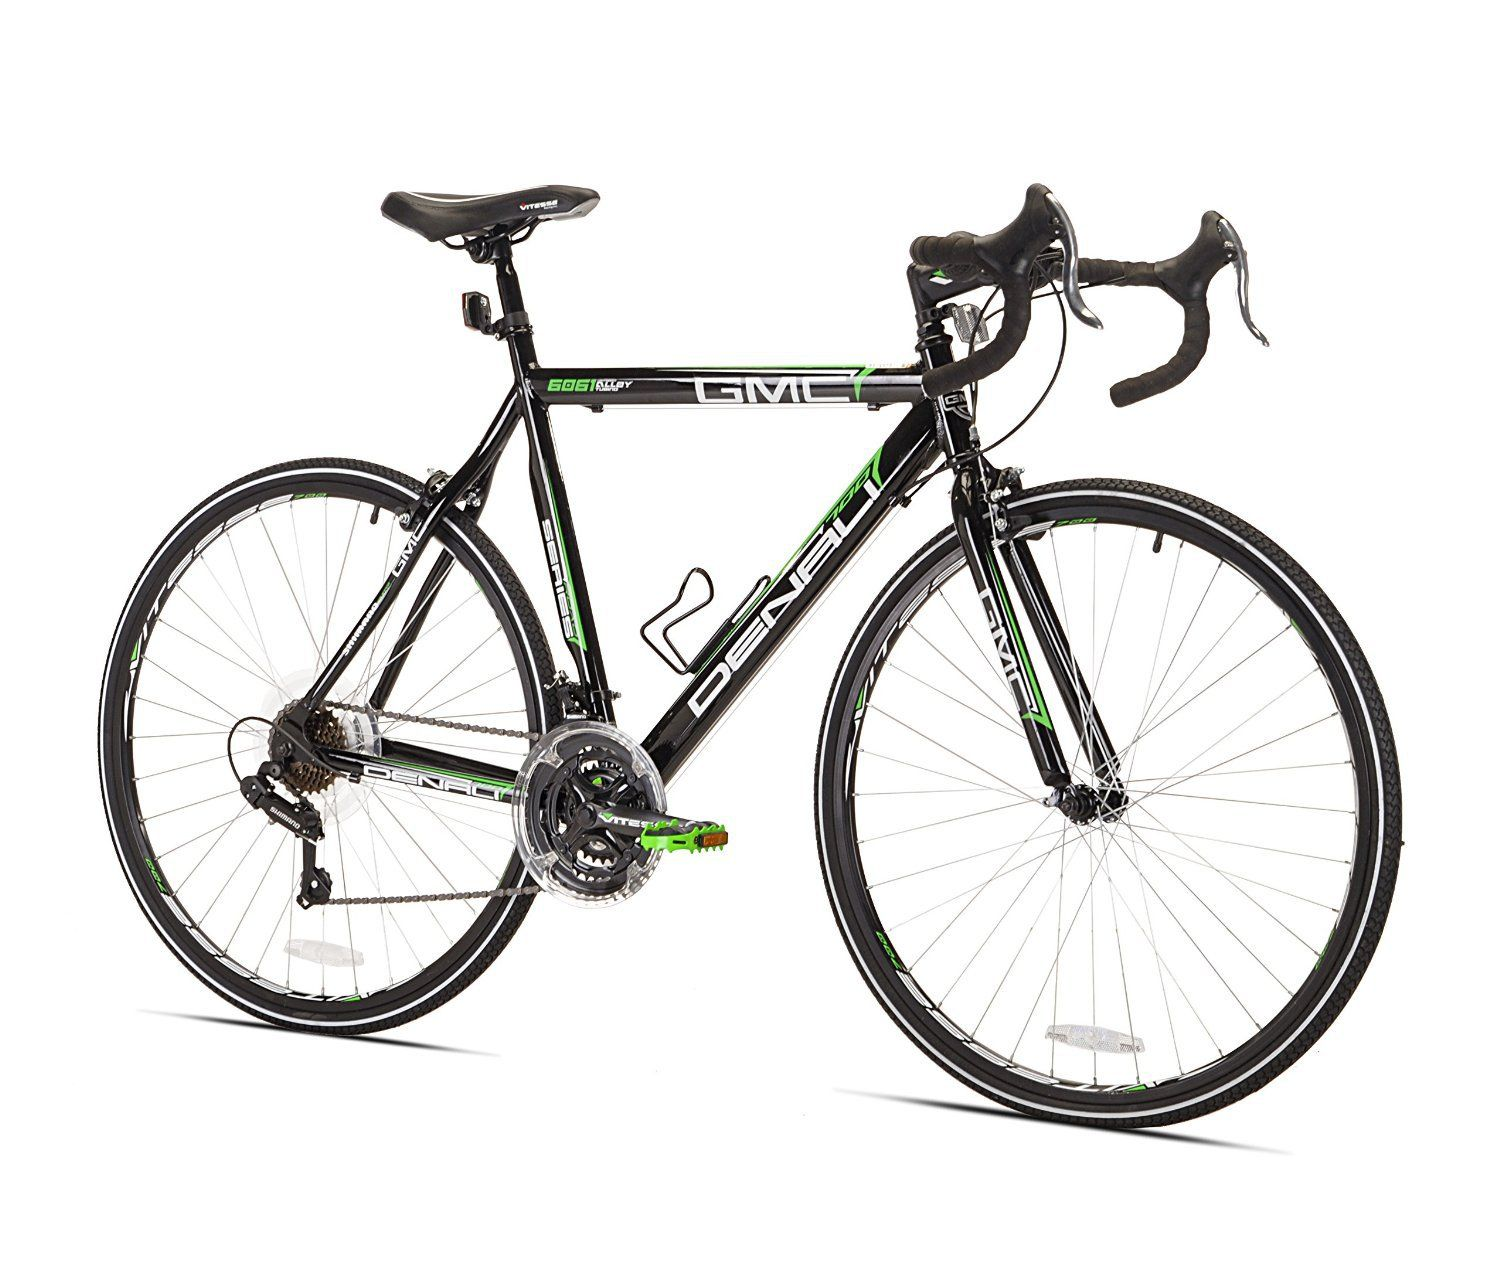 Gmc Denali Road Bike Review Gmc Road Bike Experience City Bike Road Bike Gmc Denali